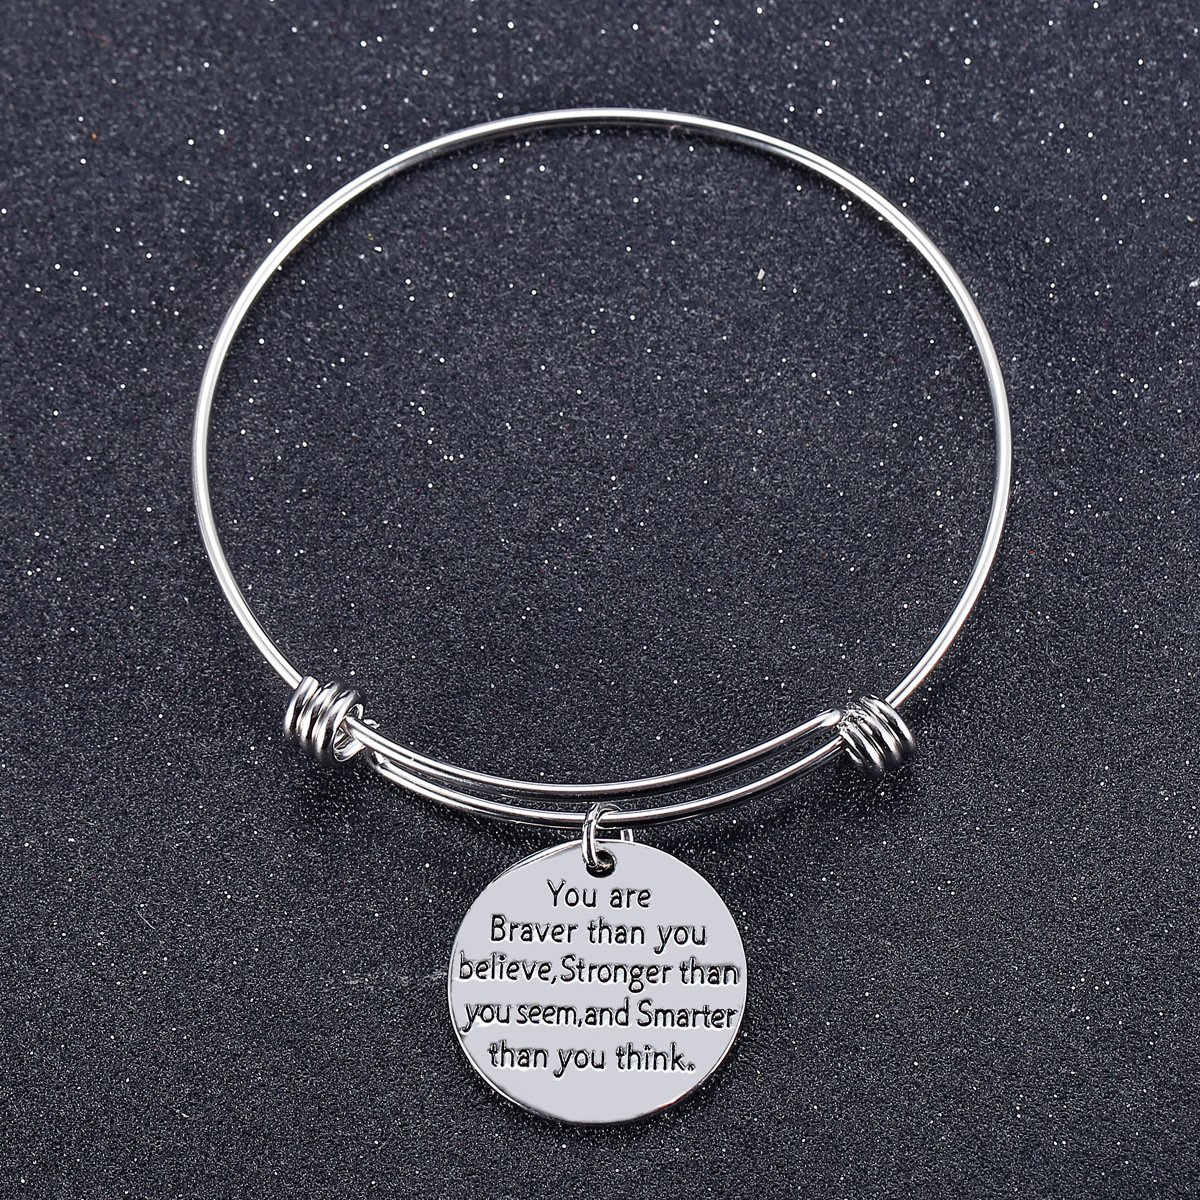 You Are Braver Than You Believe Stronger Than You Seem and Smarter Than You Think Bangle Bracelet Gift